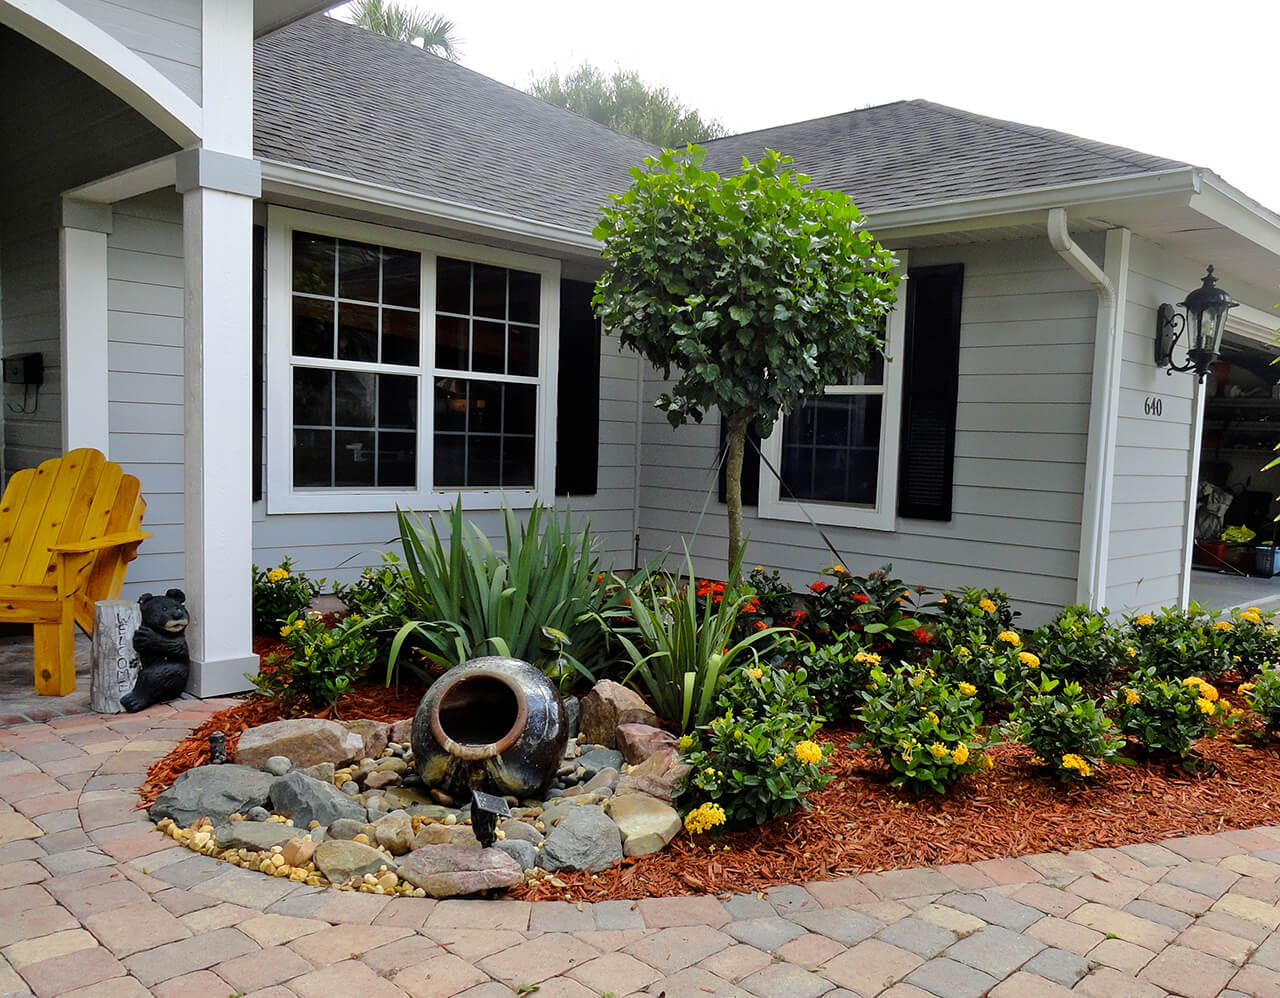 Simphome.com front yard landscaping ideas and garden designs for 2020 2021 2022